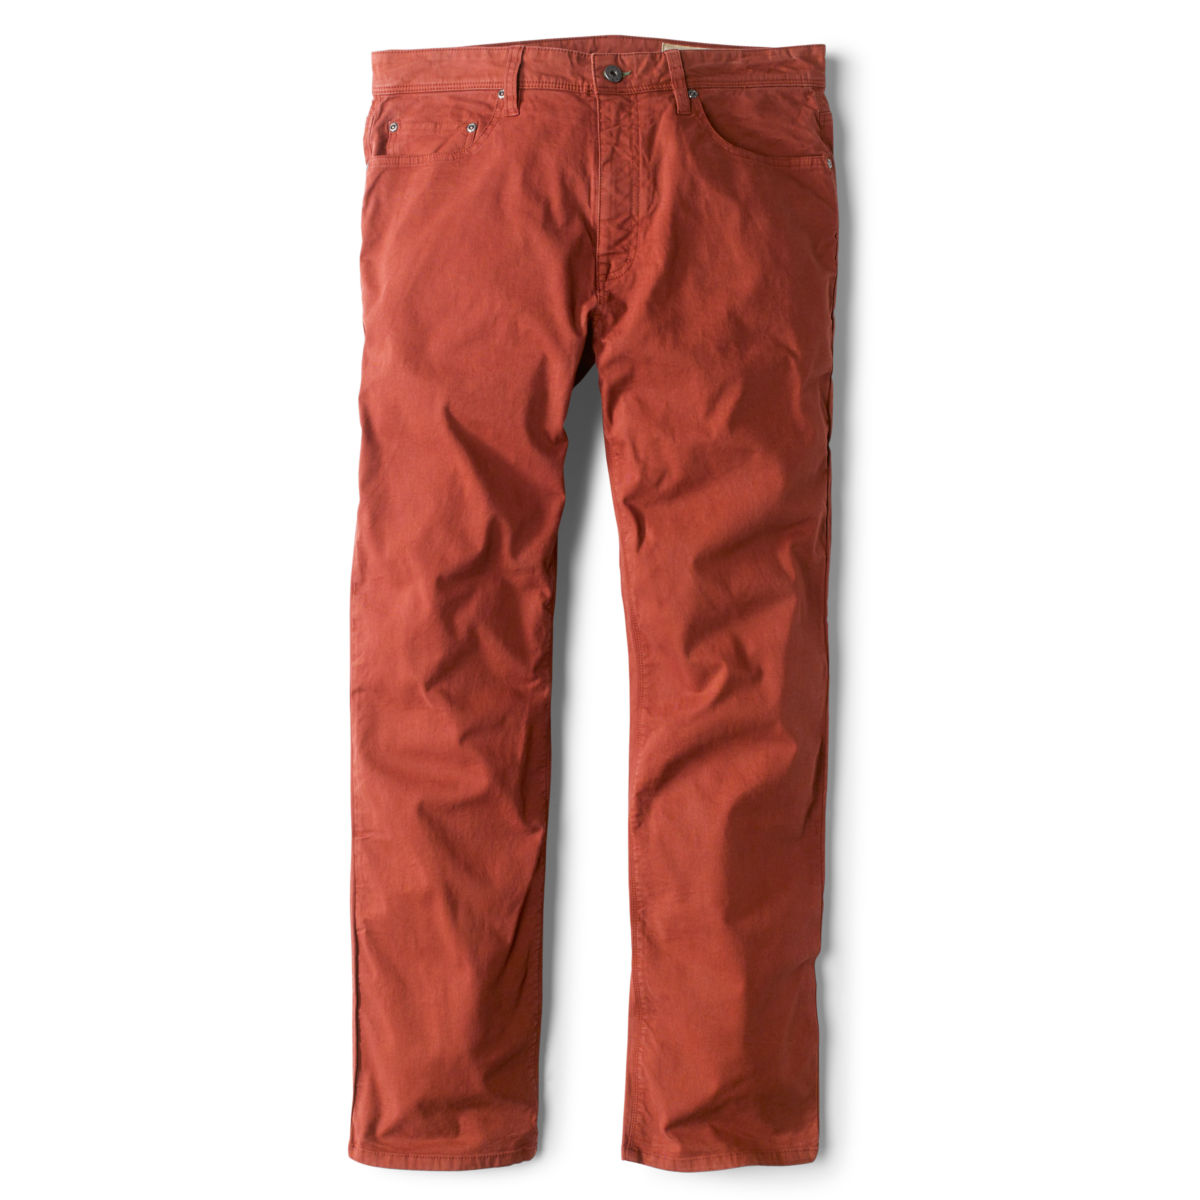 5-Pocket Stretch Twill Pants - HENNAimage number 0